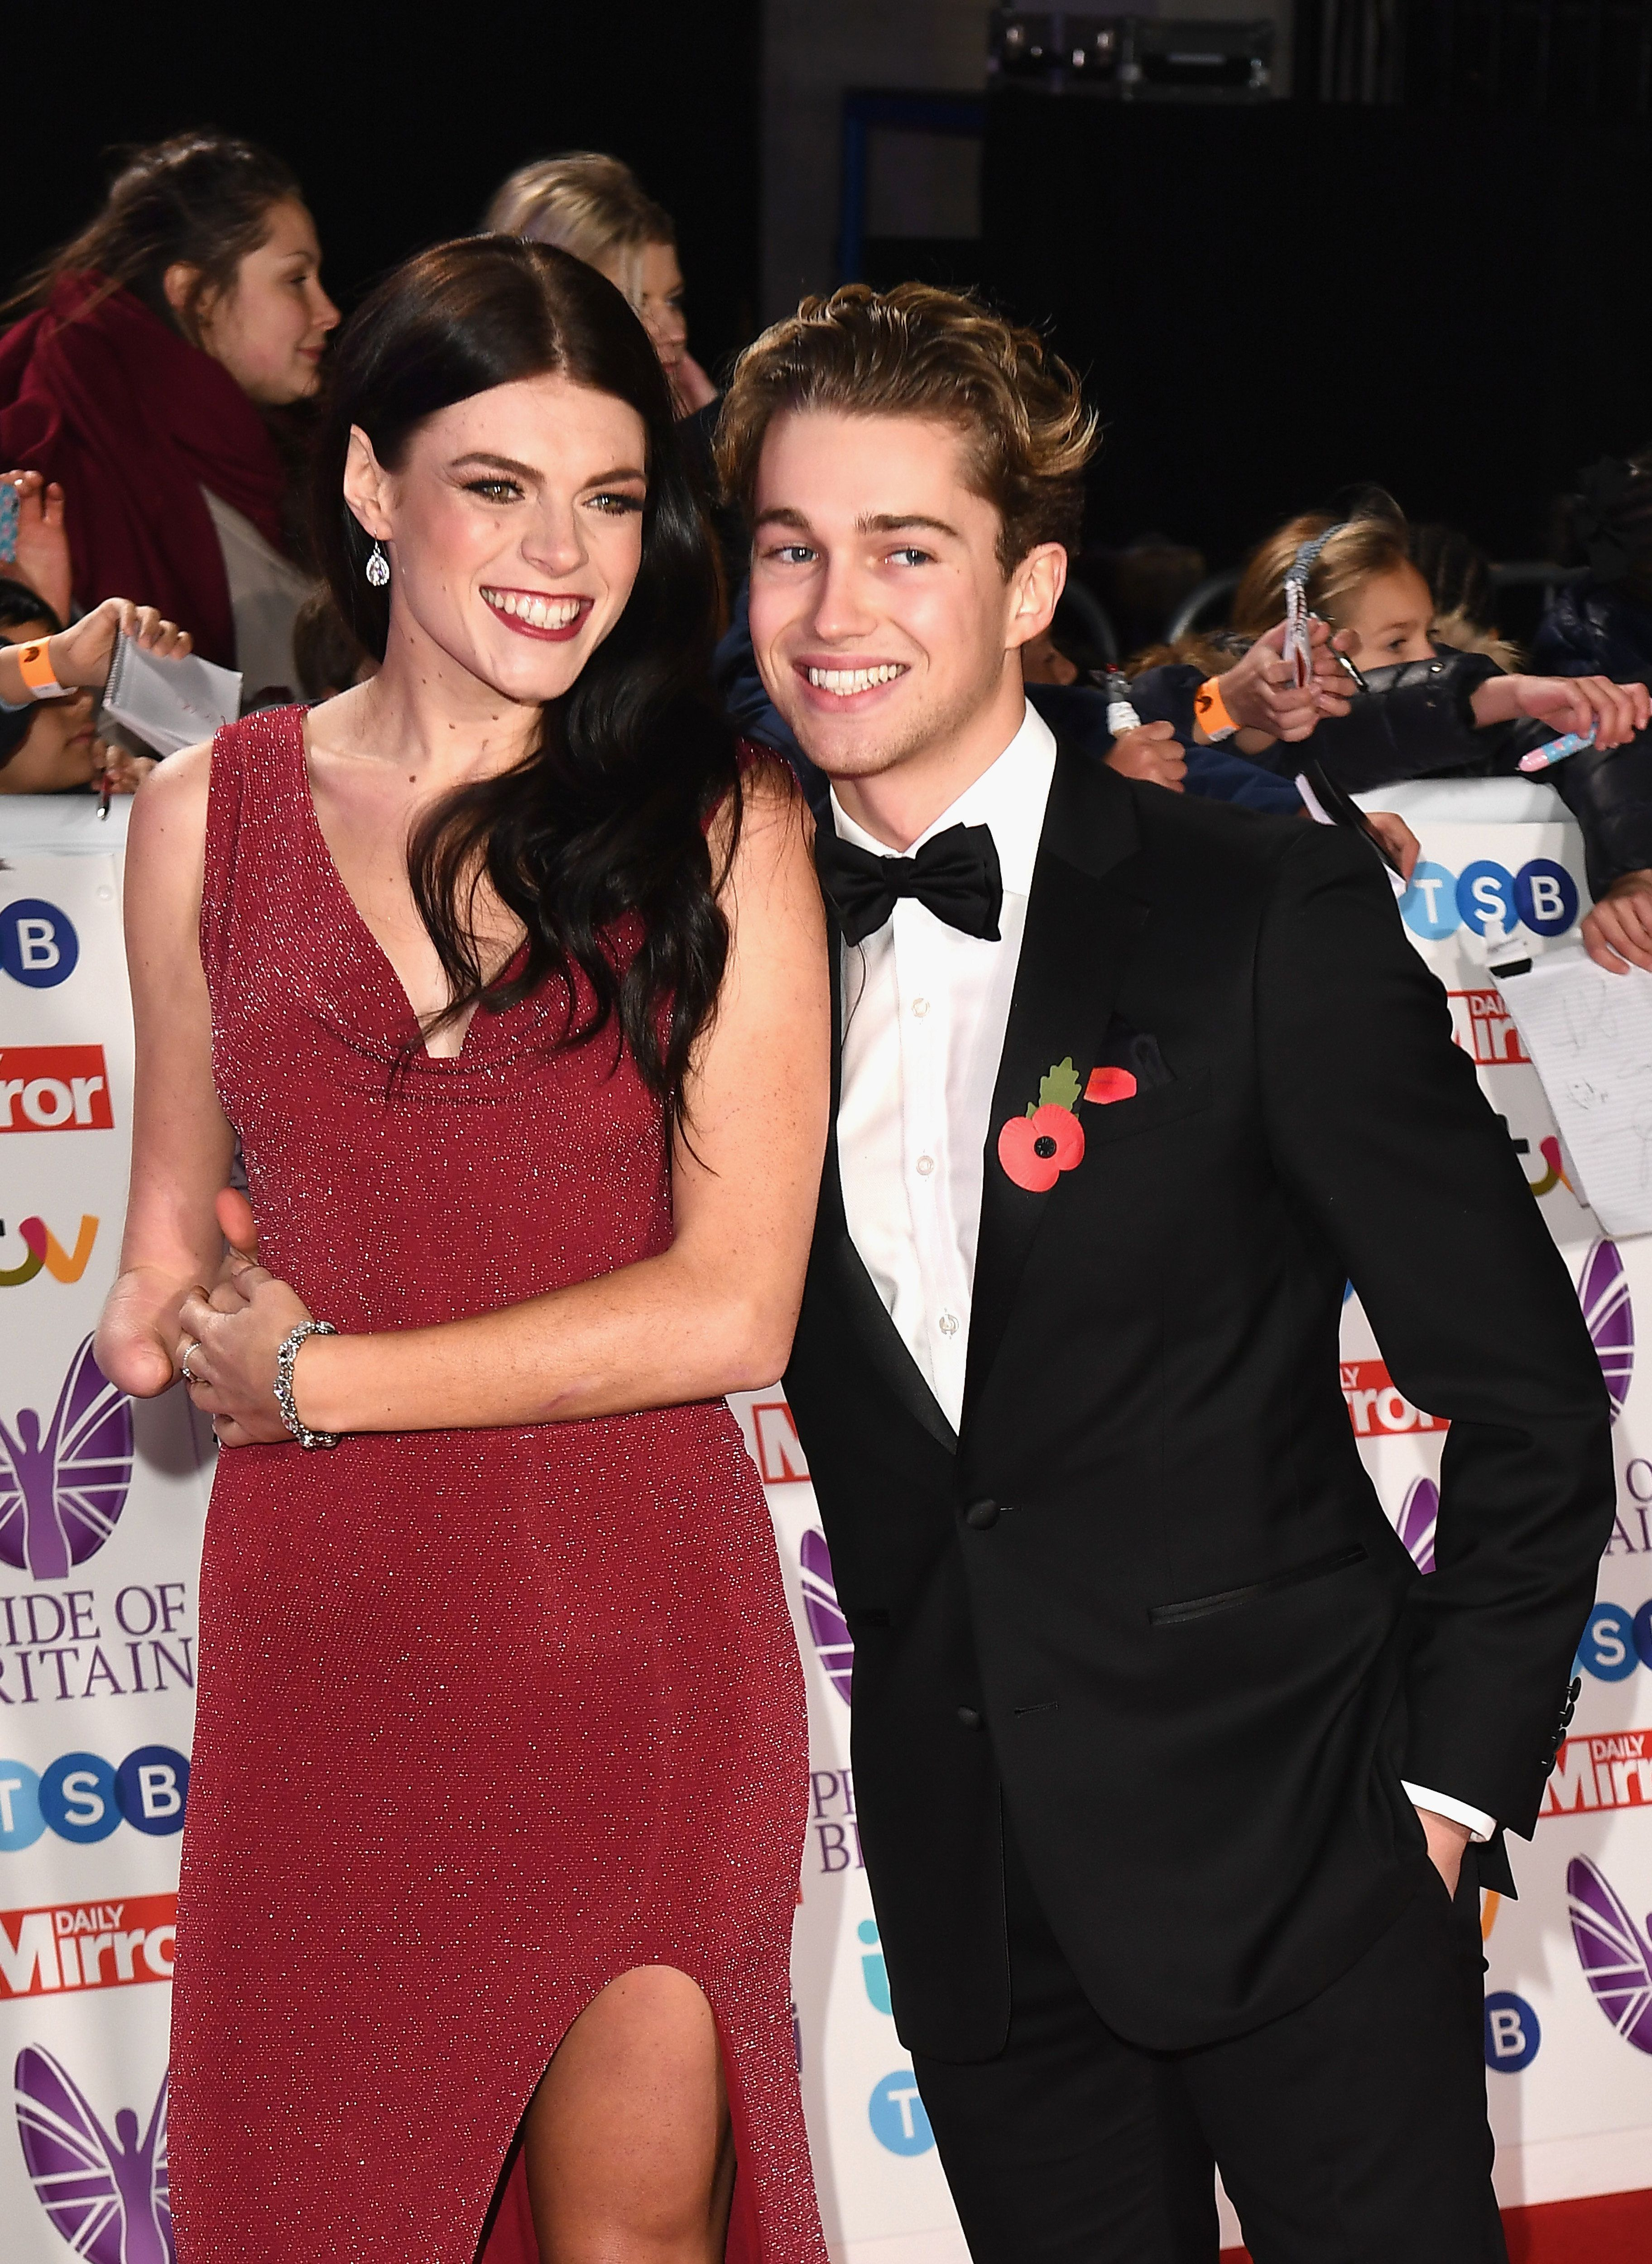 Lauren Steadman Says AJ Pritchard Deserves More Credit For Accommodating Disability In 'Strictly'